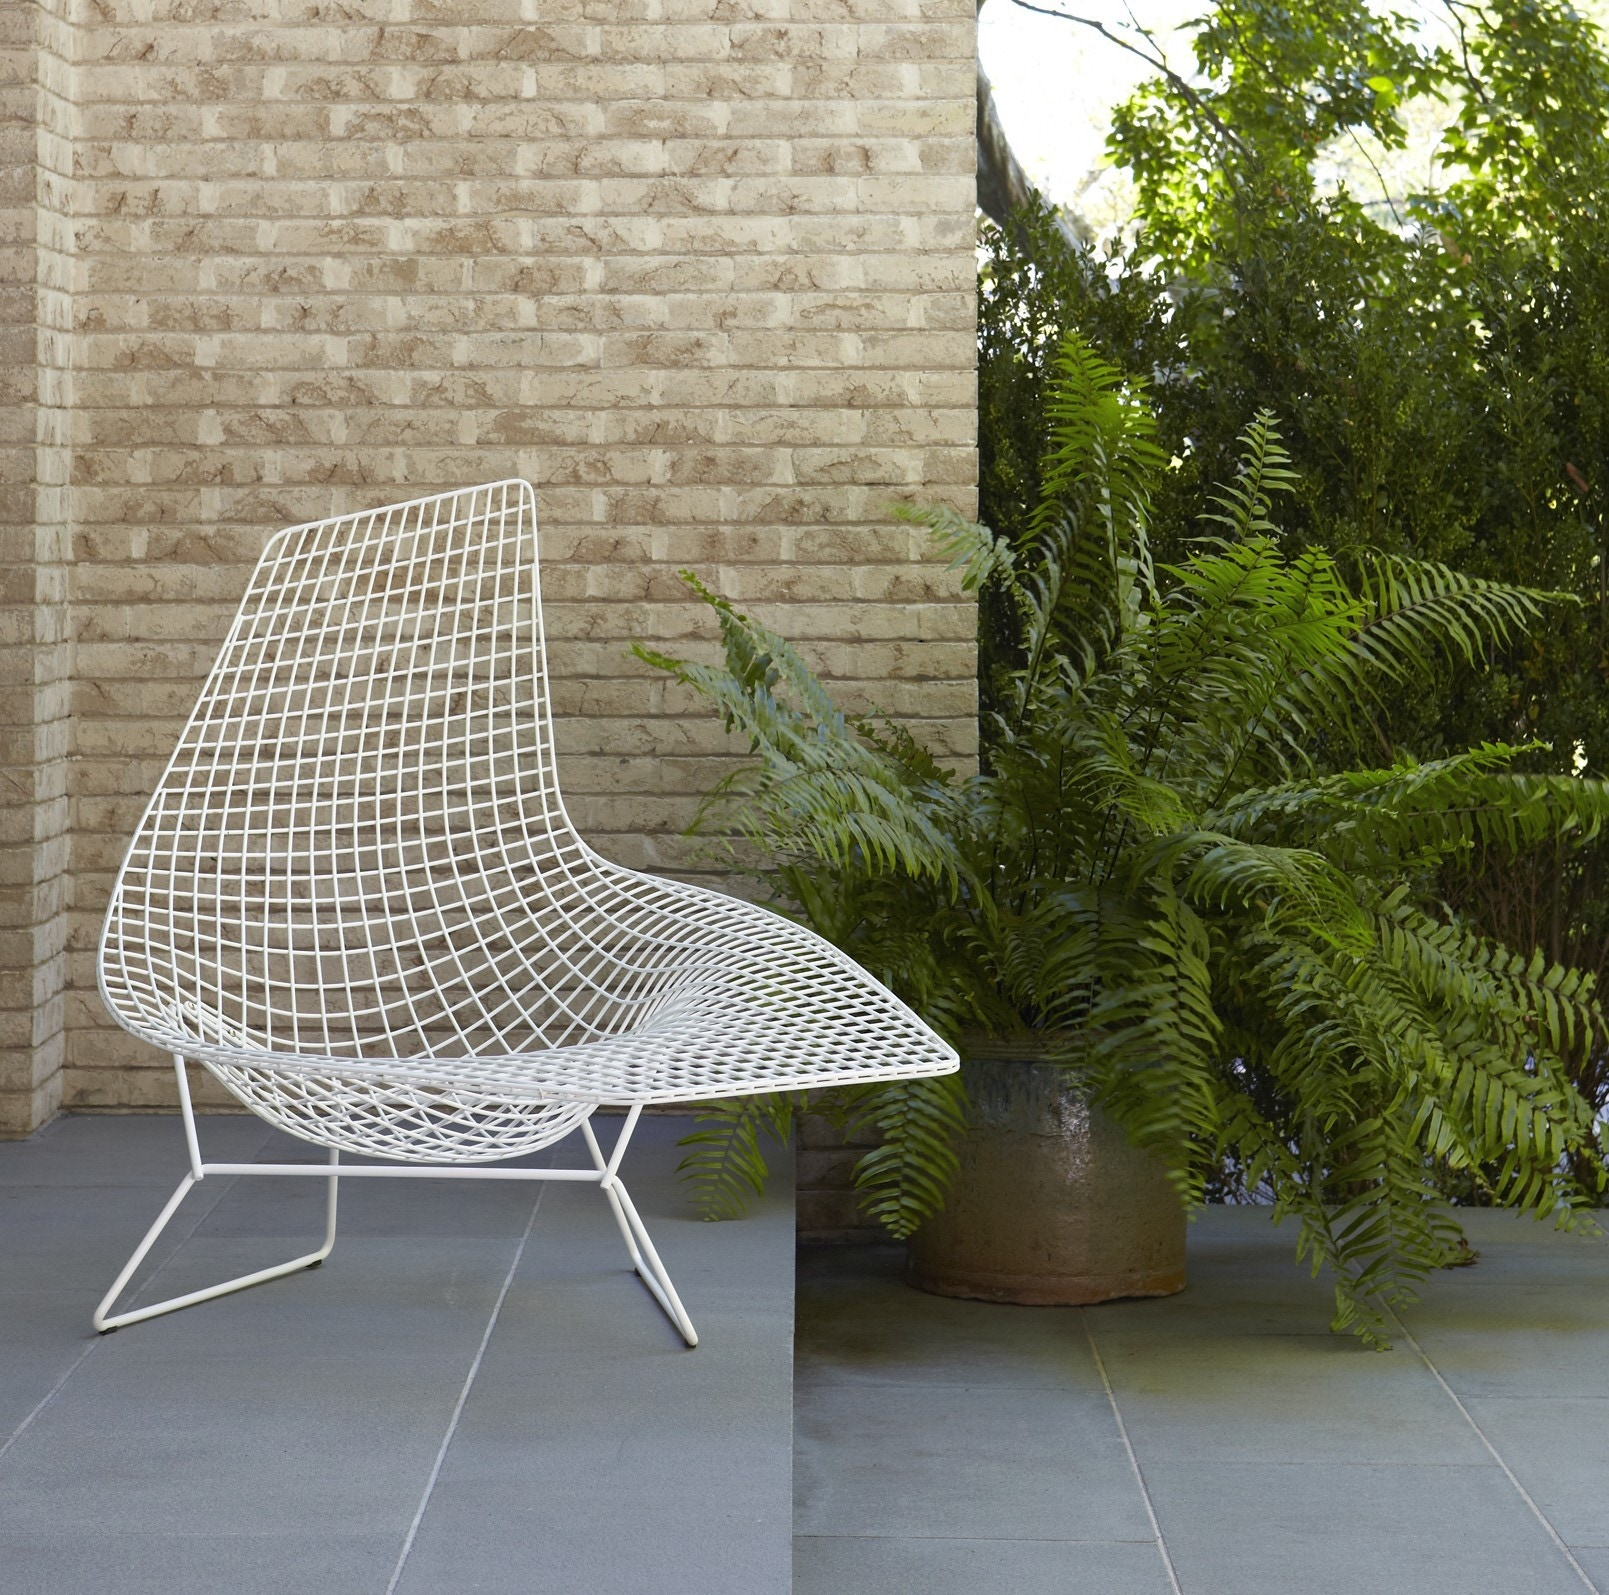 Knoll harry bertoia asymmetric chaise outdoor modern planet for Bertoia chaise prix